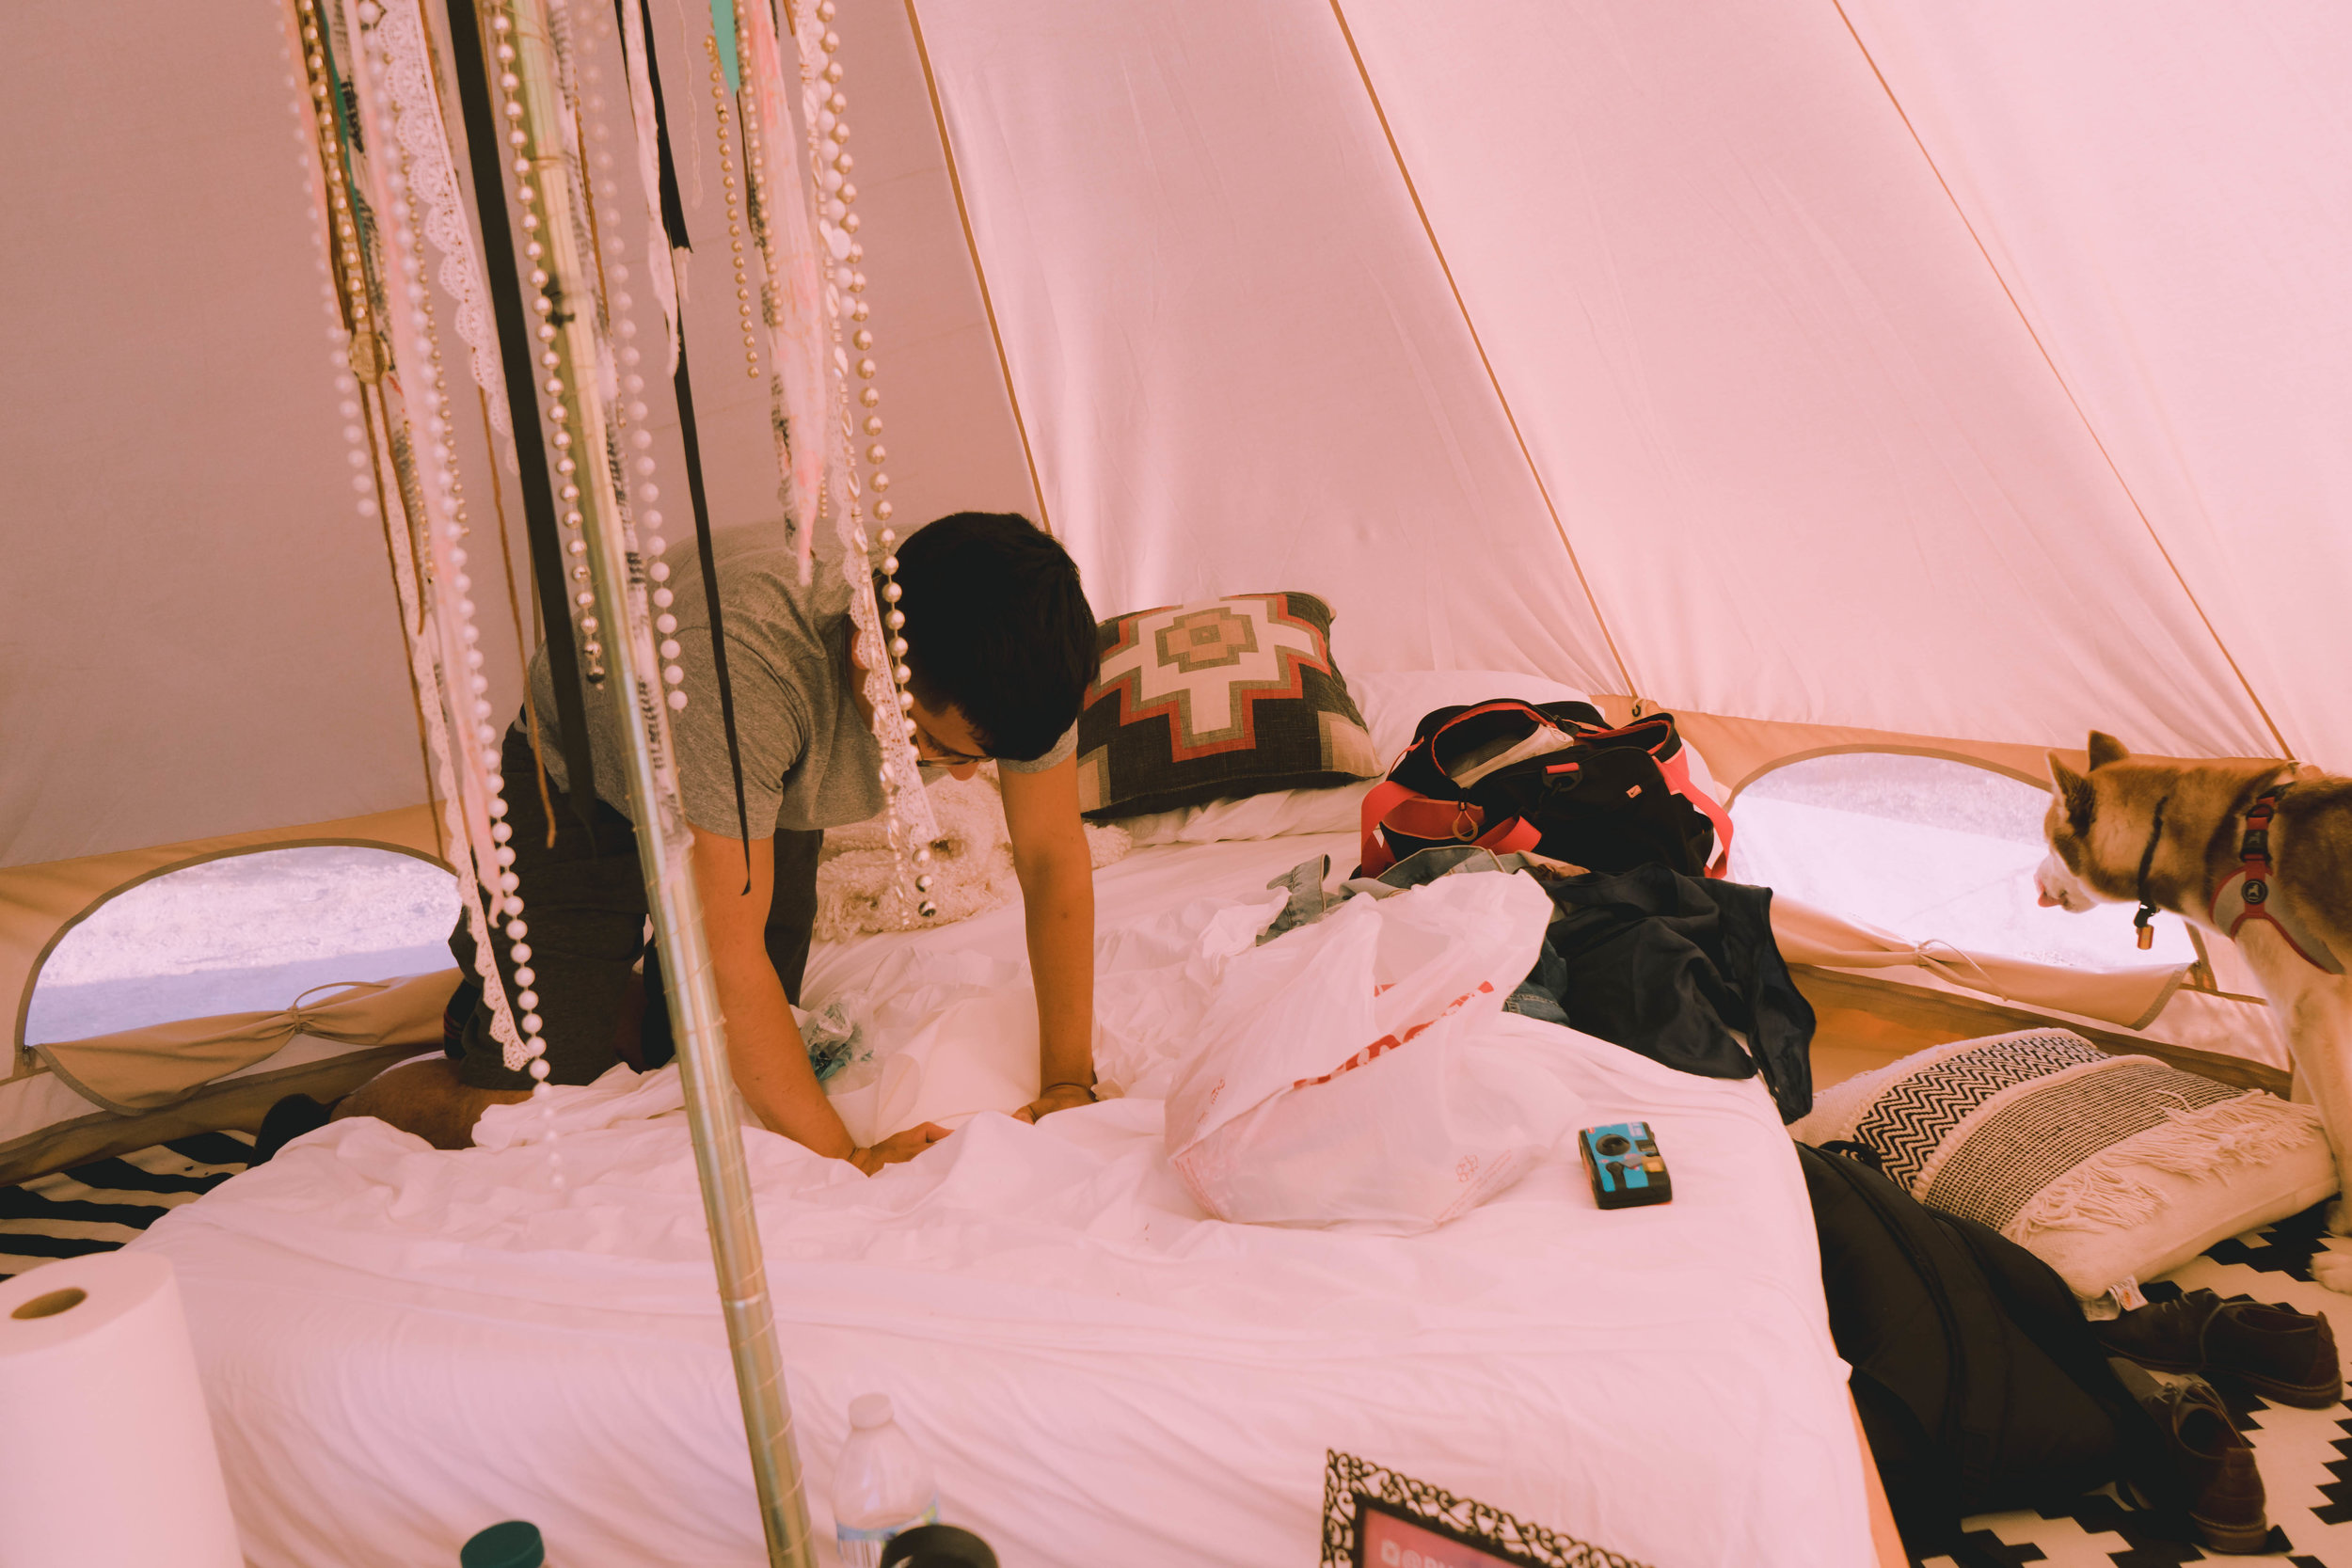 Inside of the Aquarius tent, complete with bed and other bedroom essentials